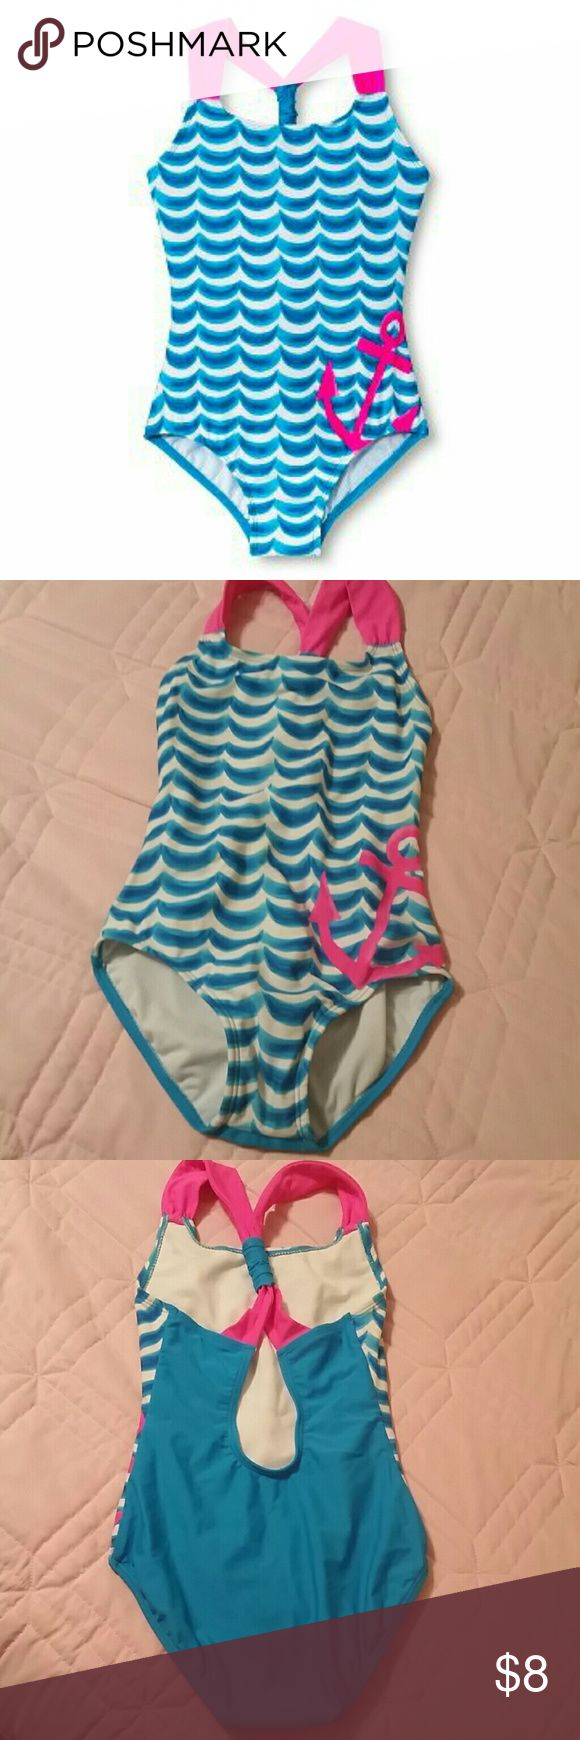 Xhiliration girl's one piece swim suit anchor pink Criss cross back 1 piece swim suit. Blue and white front with hot pink straps and anchor. Blue back. Xhilaration Swim One Piece